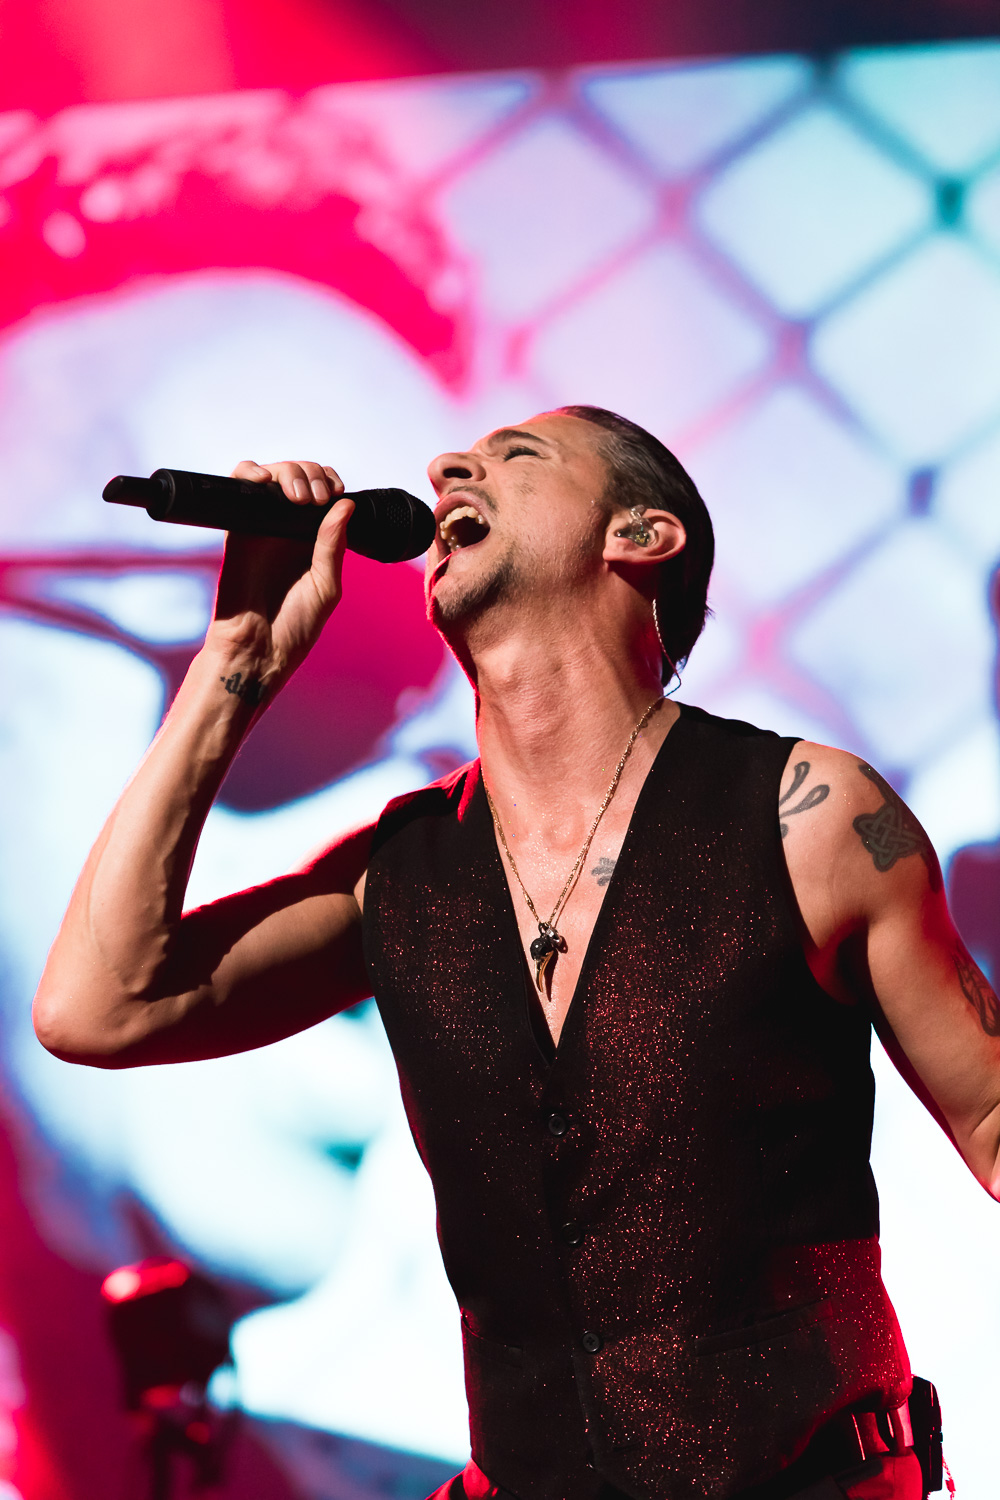 Dave Gahan, lead singer for Depeche Mode. Photo: Lmsorenson.net